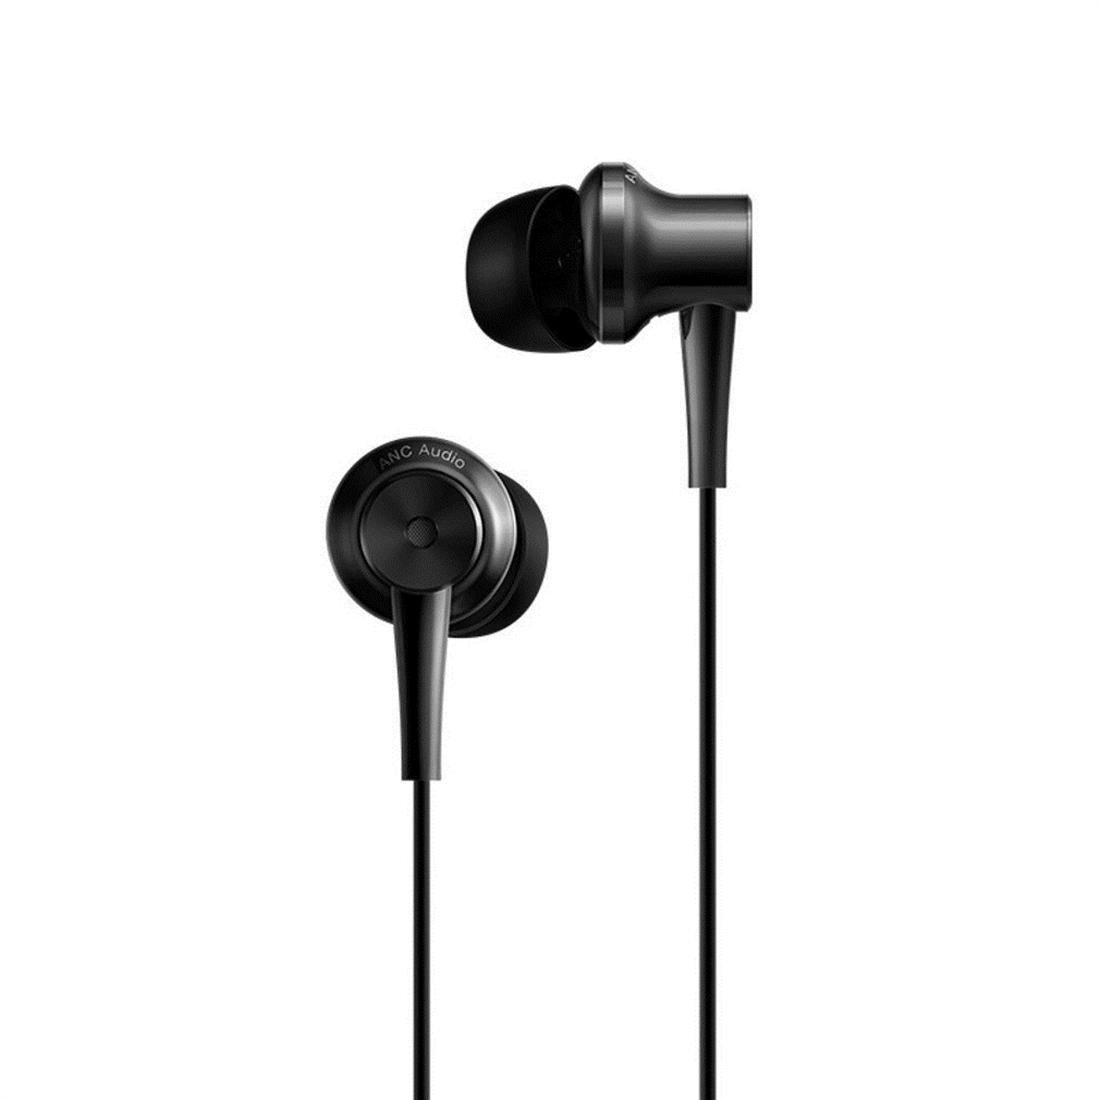 Xiaomi Active Noise Canceling Headphones Mi Type-C In-Ear Hybrid Earphones